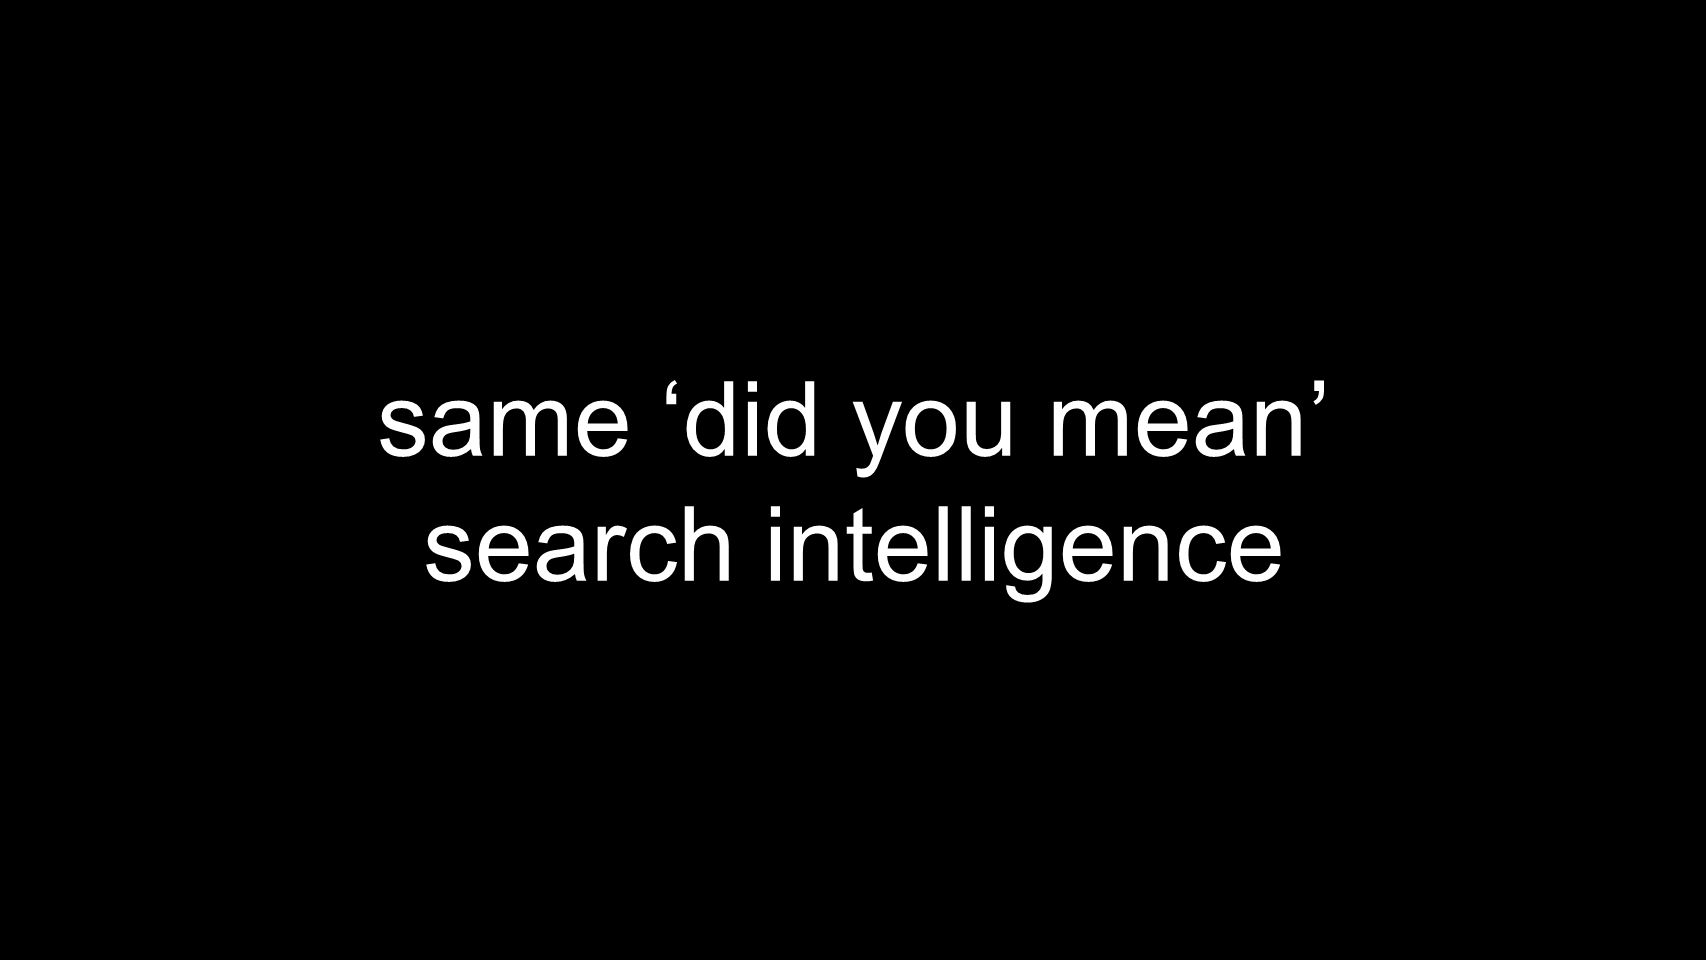 same 'did you mean' search intelligence